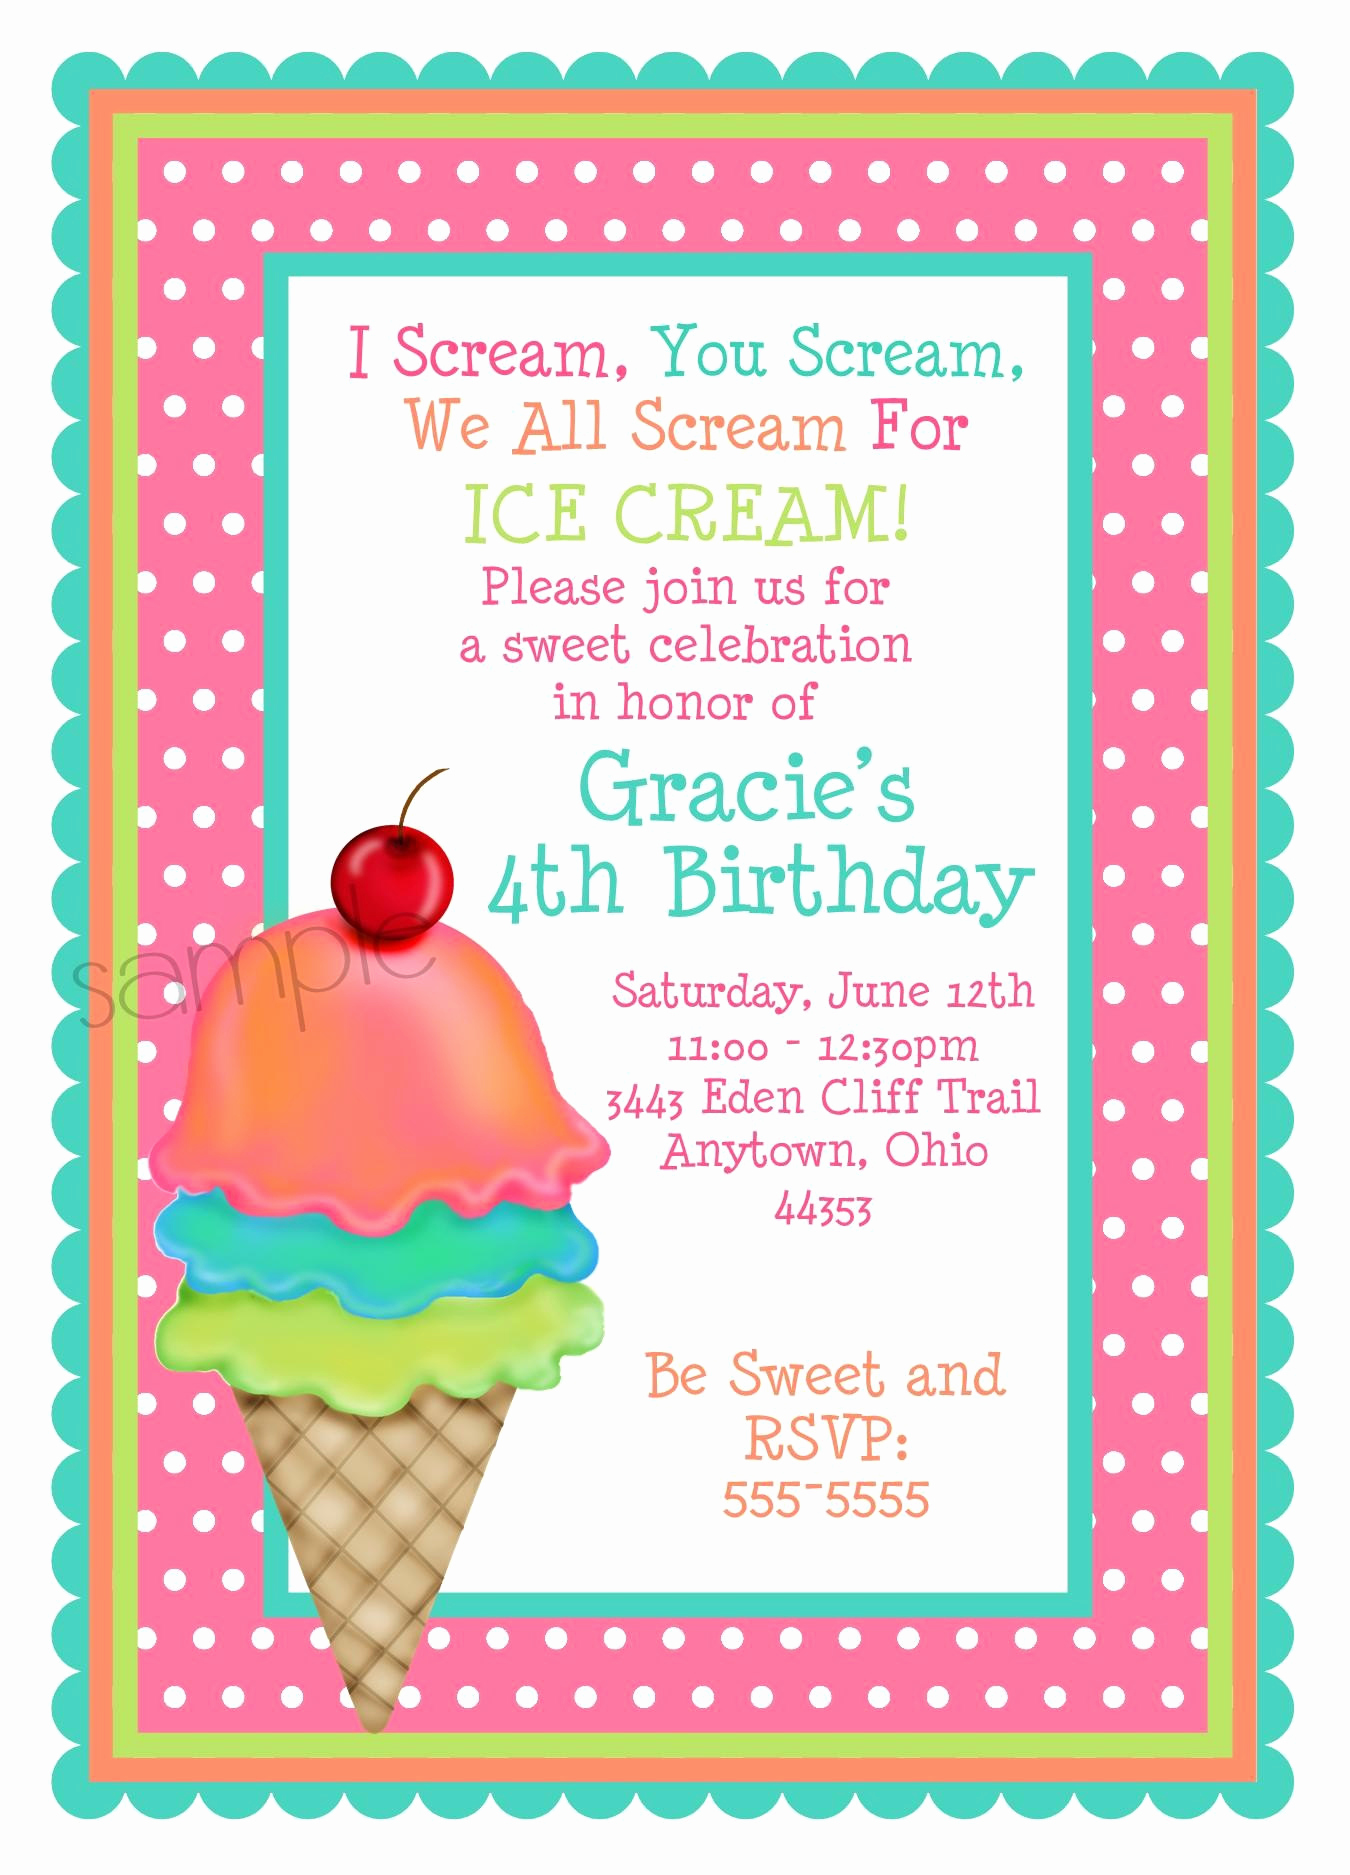 Ice Cream Party Invitation Awesome Ice Cream Invitations Ice Cream Cone Invitations Ice Cream